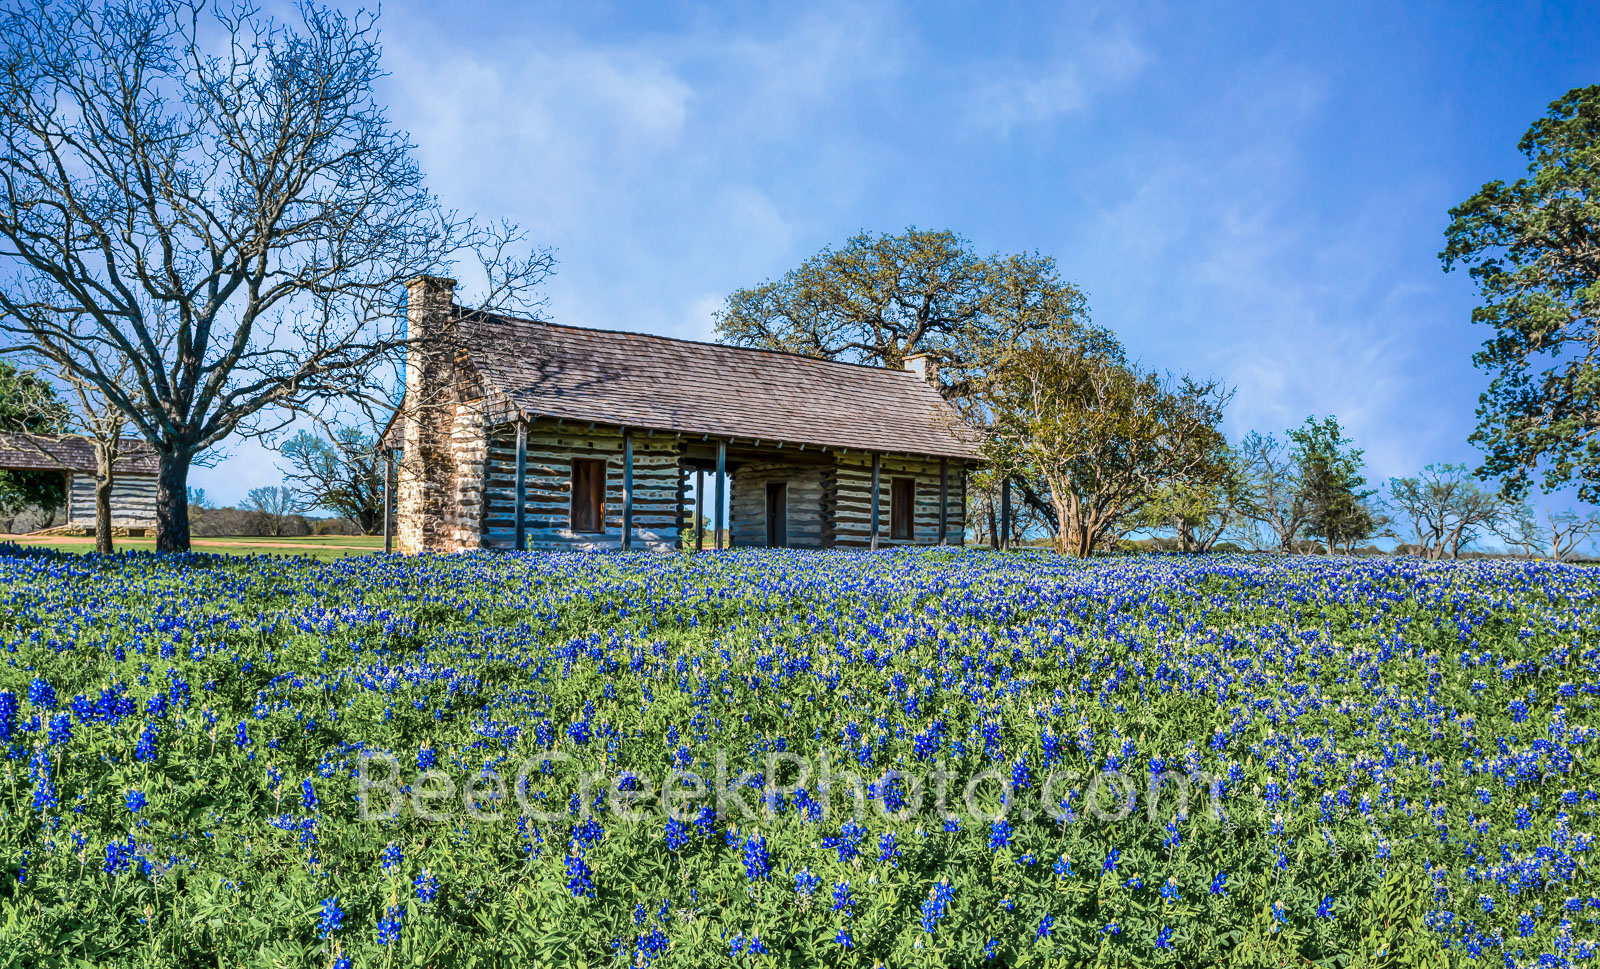 bluebonnets,, blue bonnets, log cabin, historic, wildflowers, field, landscapes, images of texas, texas wildflowers, spring flowers, spring, springtime, flora, plants, natural,, photo